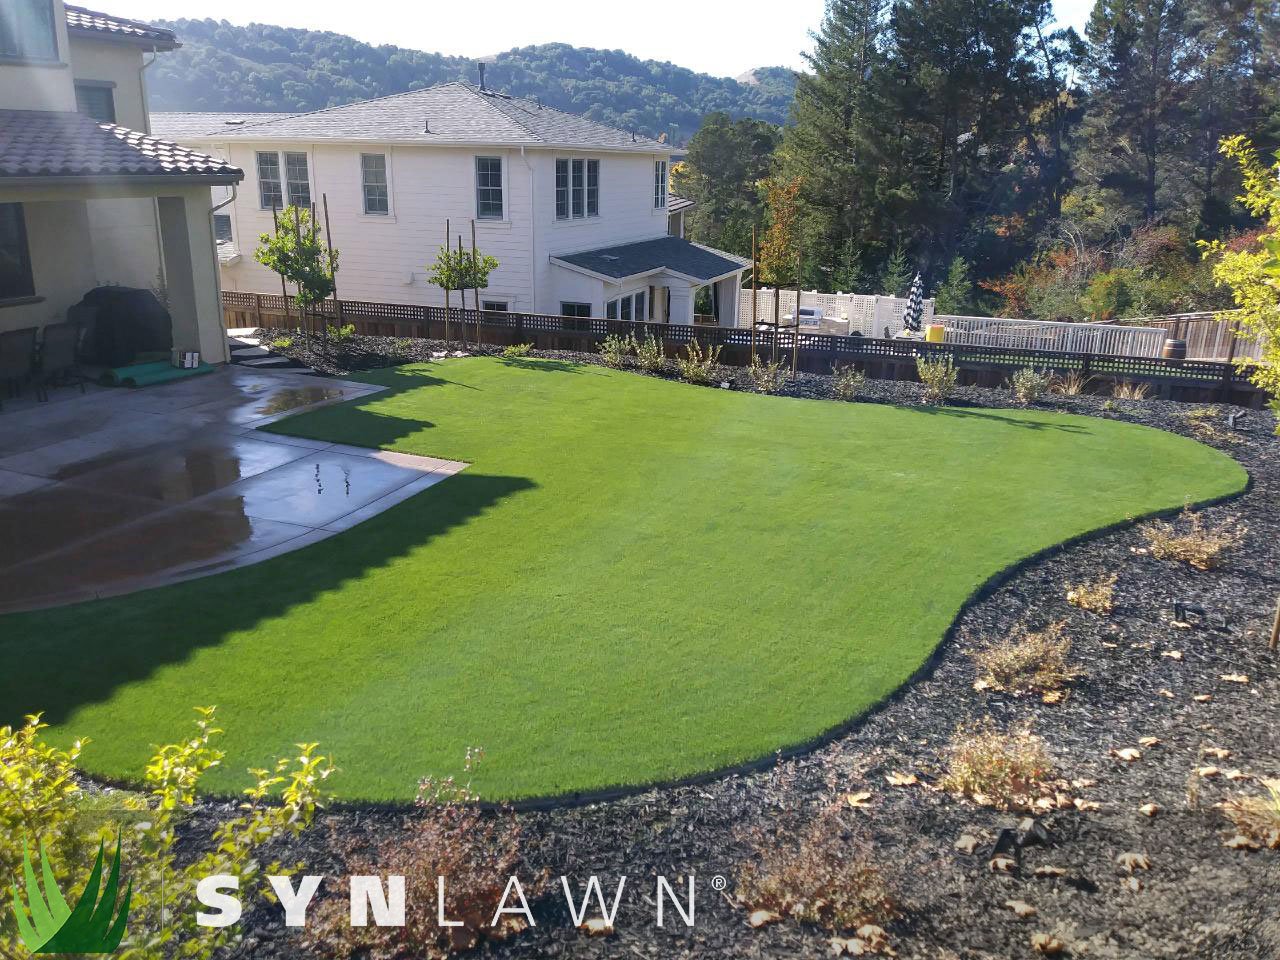 SYNLawn Landscape Photo 30